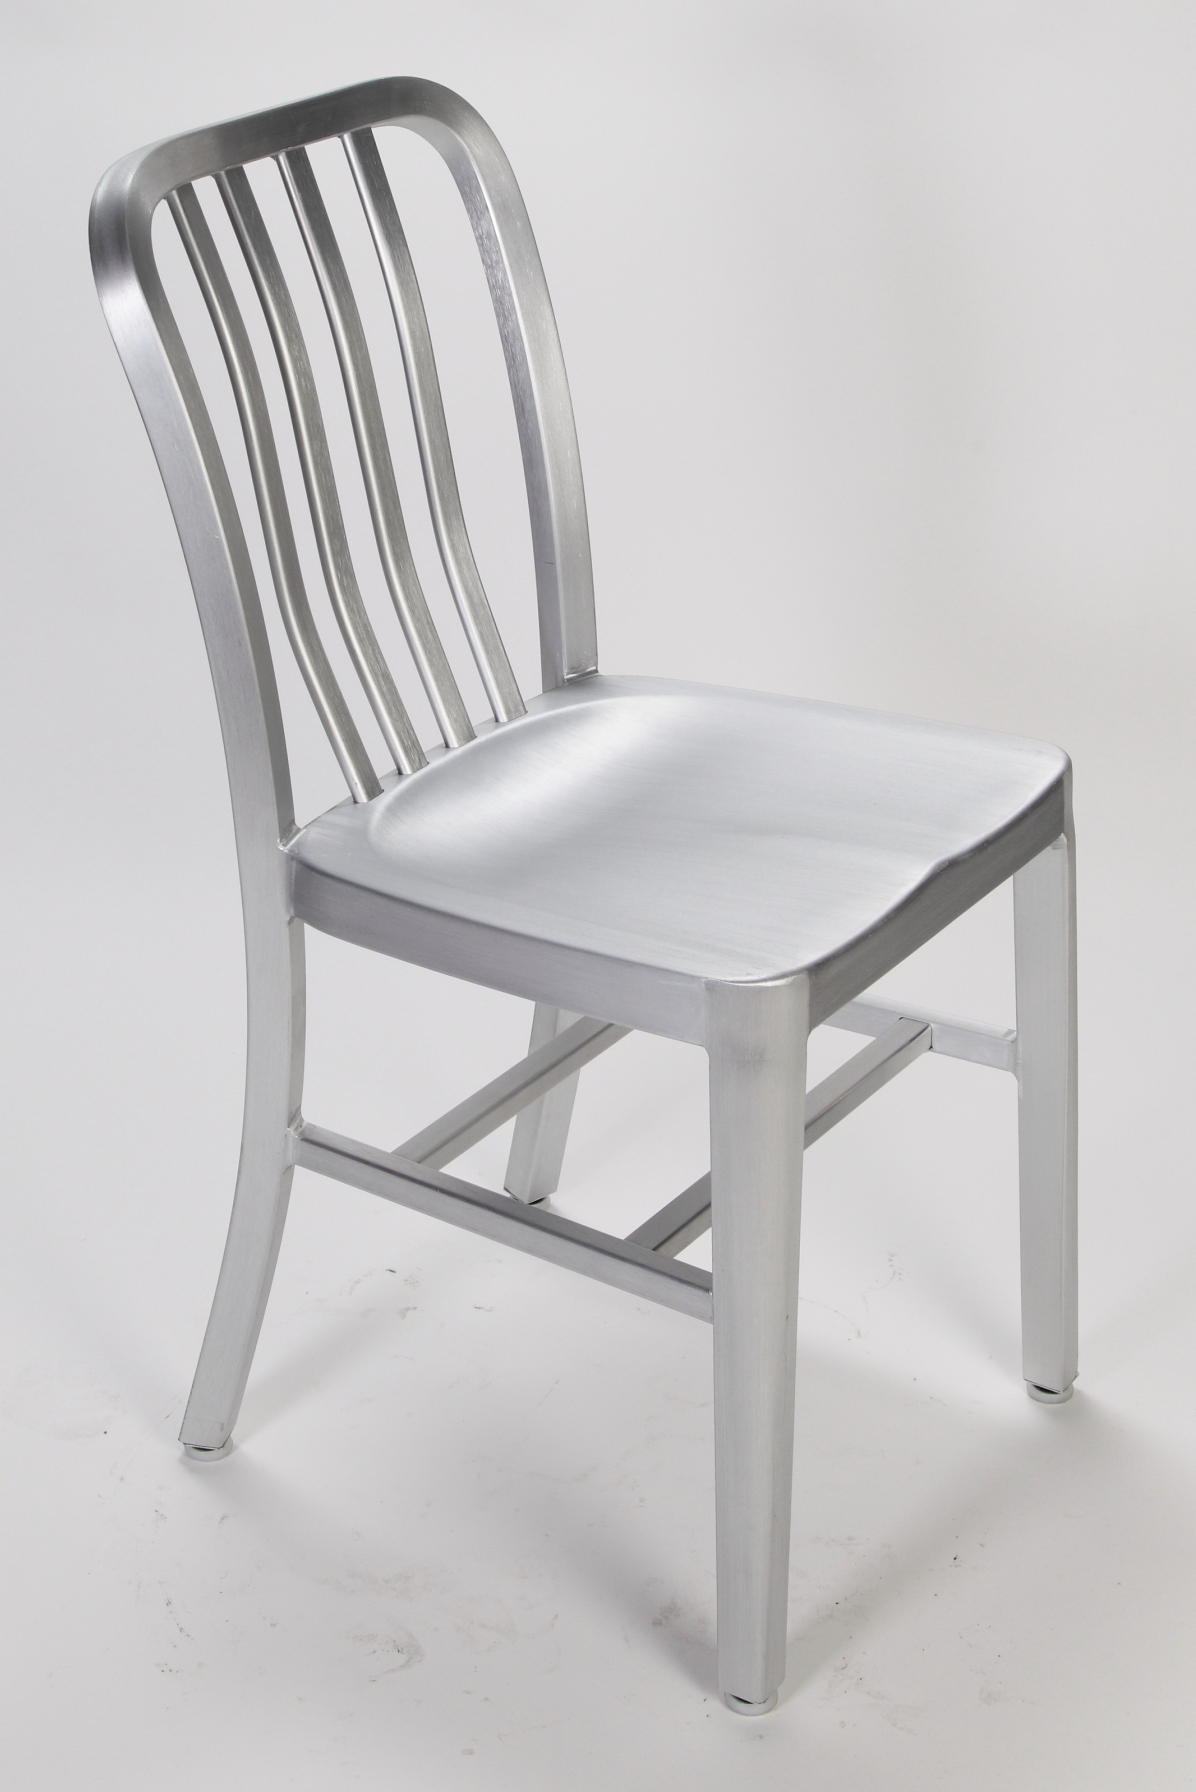 Aluminum Restaurant Chairs 12 Reasons to Choose : 2700 1 from www.restaurantfurniturewarehouse.com size 1196 x 1792 jpeg 1025kB